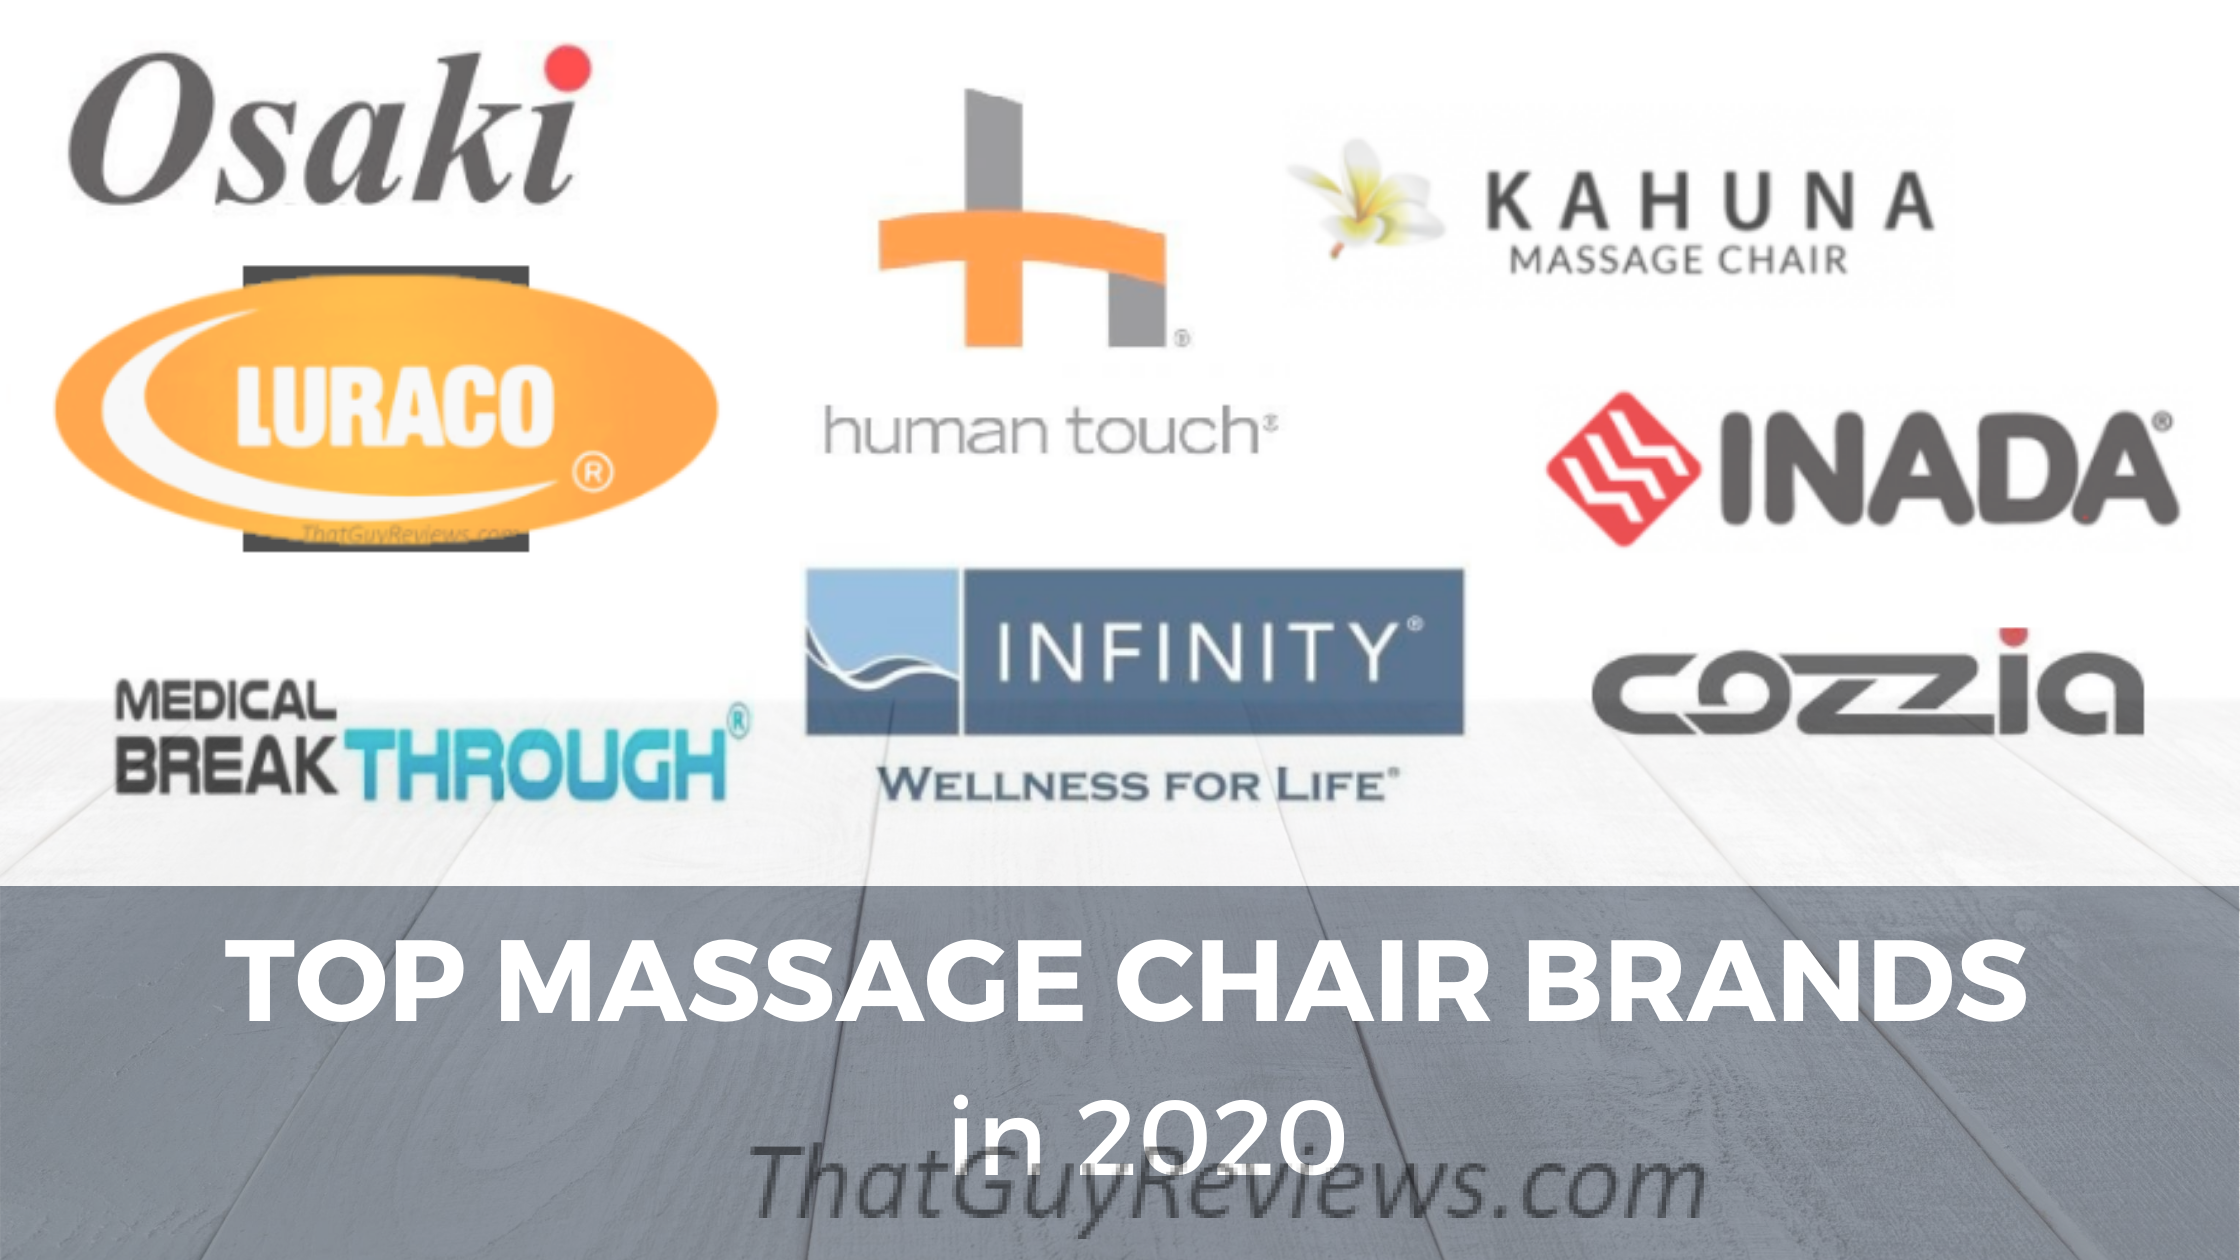 Top Massage Chair Brands in 2021